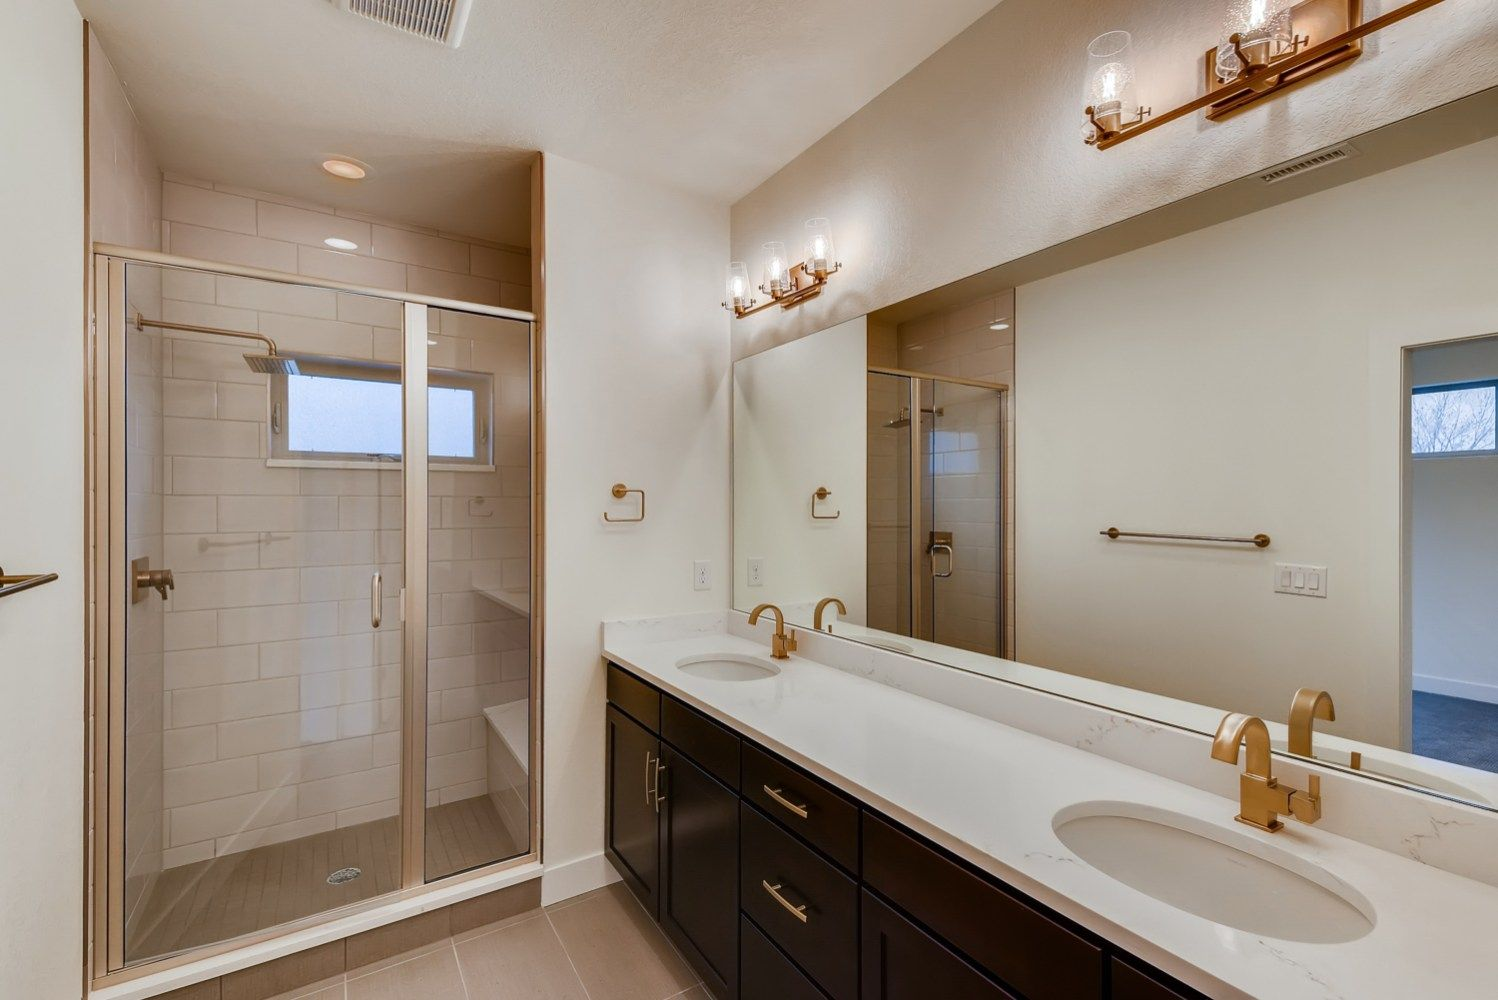 Bathroom featured in the Orion Series - Main Floor Master By Koelbel Urban Homes in Denver, CO